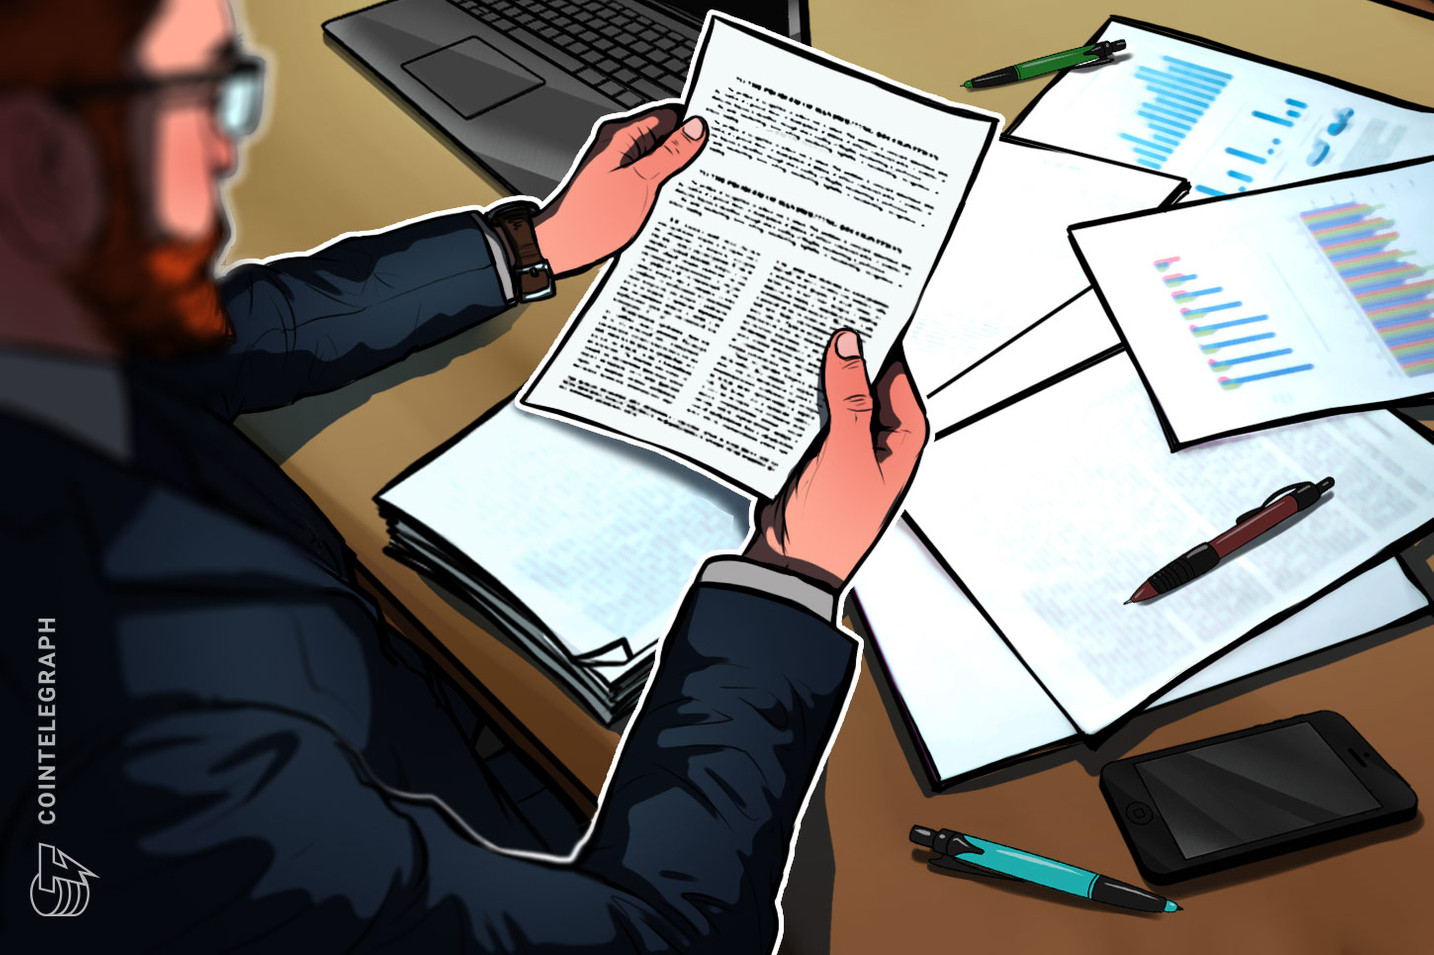 Bitpoint Taiwan Sues Parent Exchange for Overbilling After July Hack